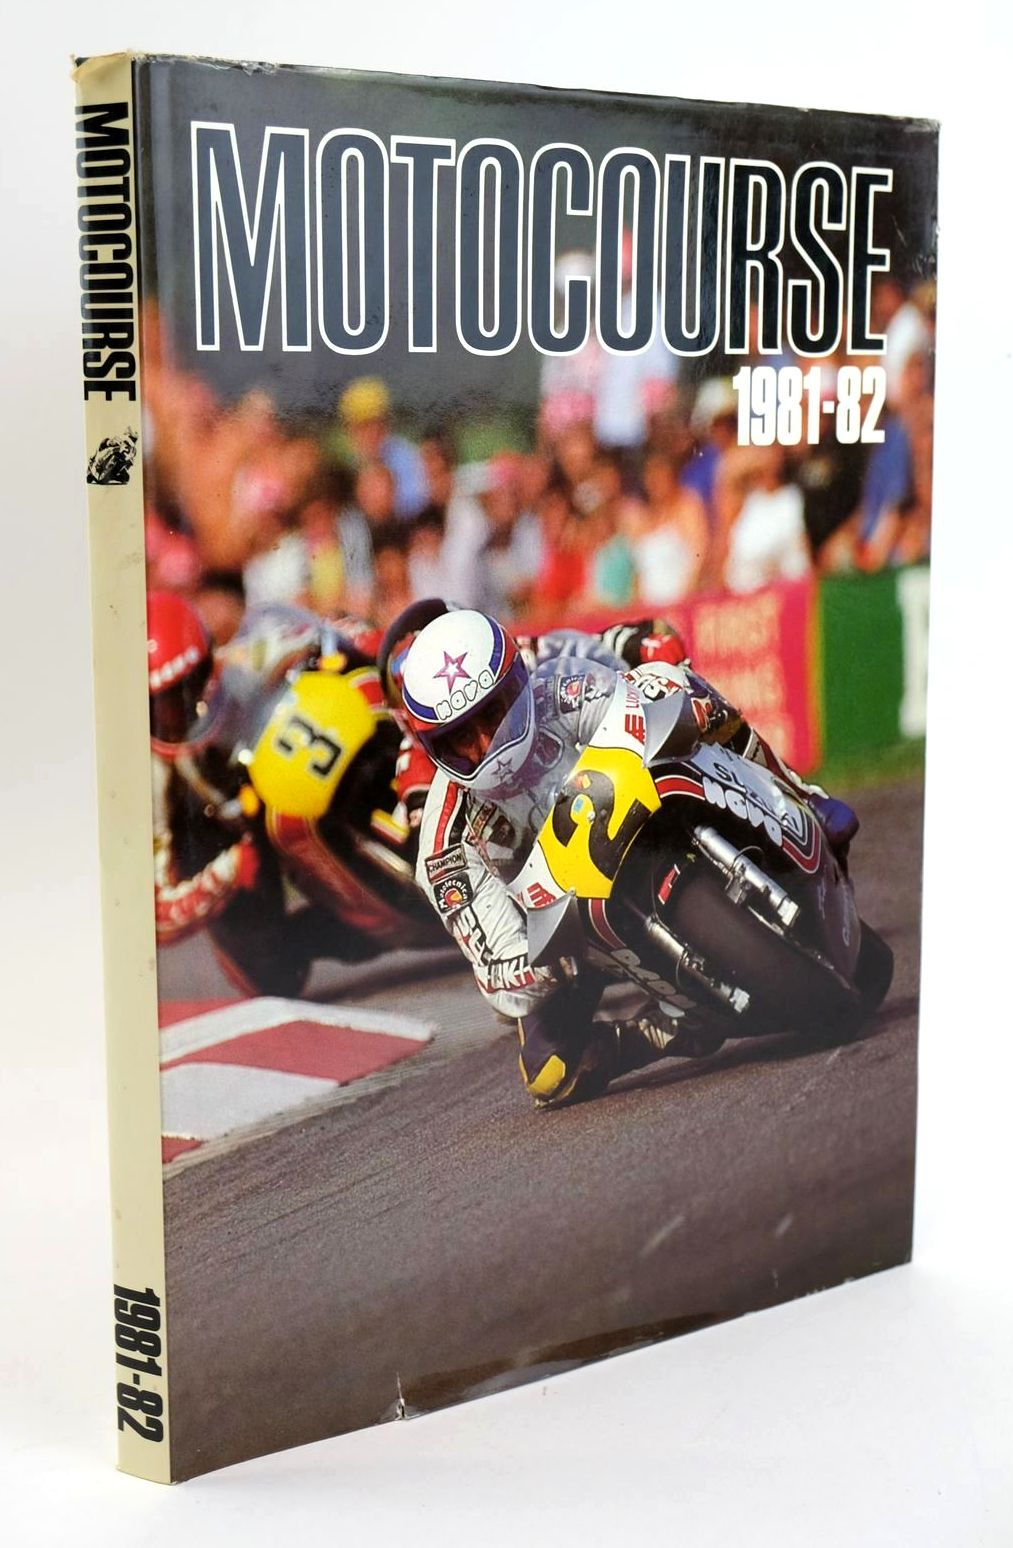 Photo of MOTOCOURSE 1981-82 written by Clifford, Peter published by Hazleton Publishing (STOCK CODE: 1319324)  for sale by Stella & Rose's Books